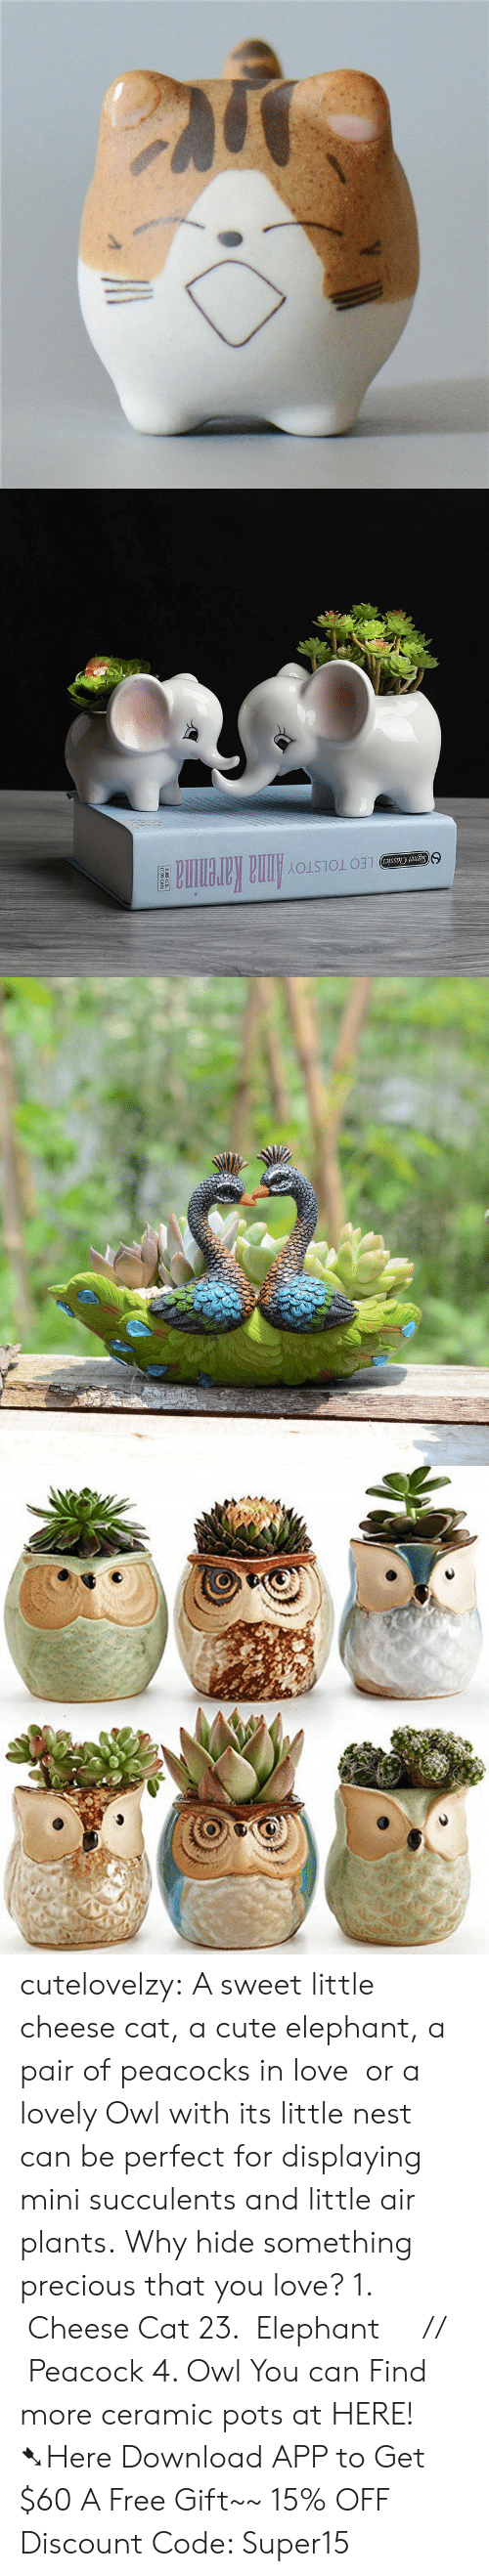 Leos: LEO TOLSTOYAnna Karenina  Signet Classics cutelovelzy: A sweet little cheese cat, a cute elephant, a pair of peacocks in love  or a lovely Owl with its little nest can be perfect for displaying mini succulents and little air plants. Why hide something precious that you love? 1.  Cheese Cat  23.  Elephant     //    Peacock  4. Owl  You can Find more ceramic pots at HERE!  ➷Here Download APP to Get $60  A Free Gift~~  15% OFF Discount Code: Super15